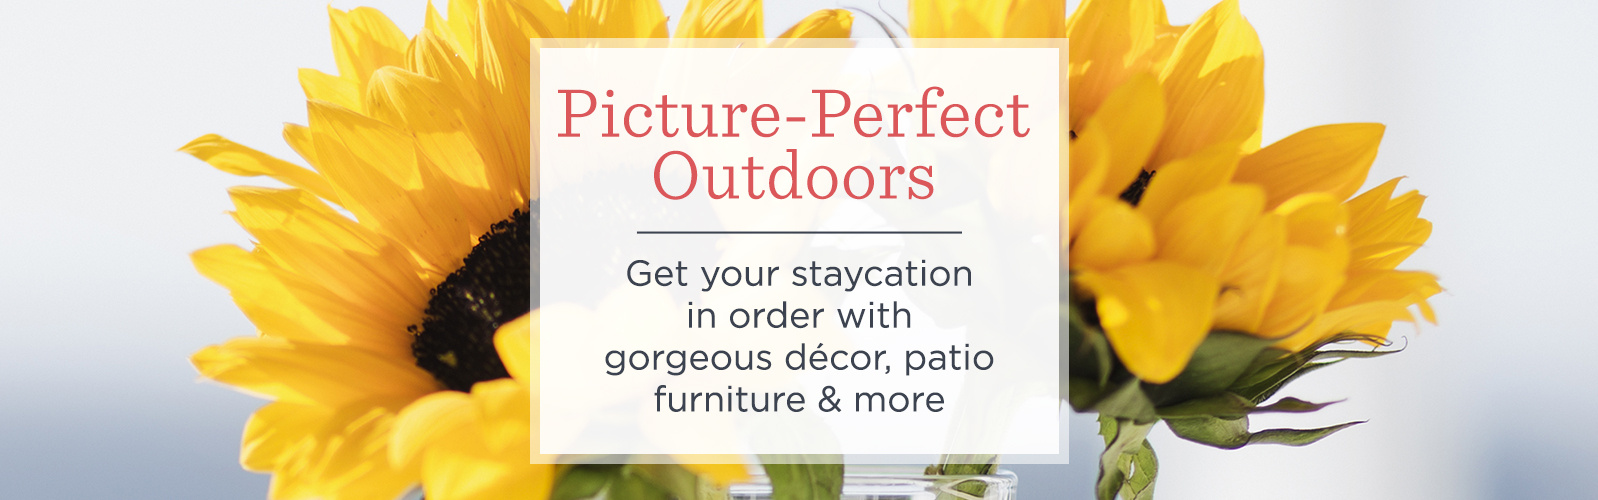 Picture-Perfect Outdoors. Get your staycation in order with gorgeous décor, patio furniture & more